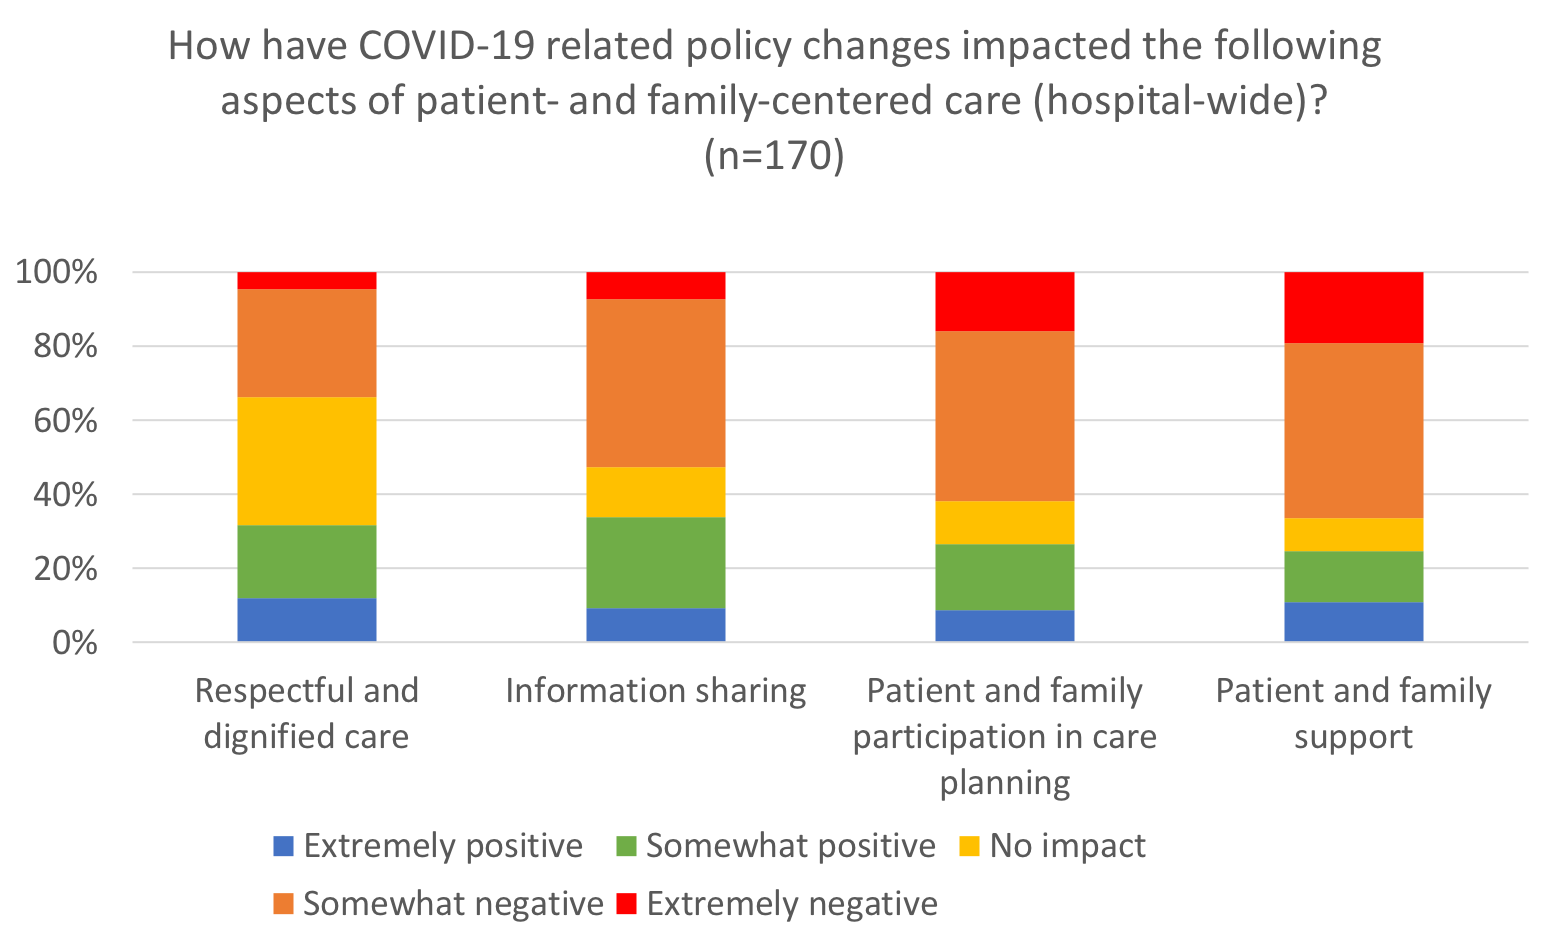 How have COVID-19 related policy changes impacted the following aspects of patient- and family-centered care (hospital-wide)? (n=116)